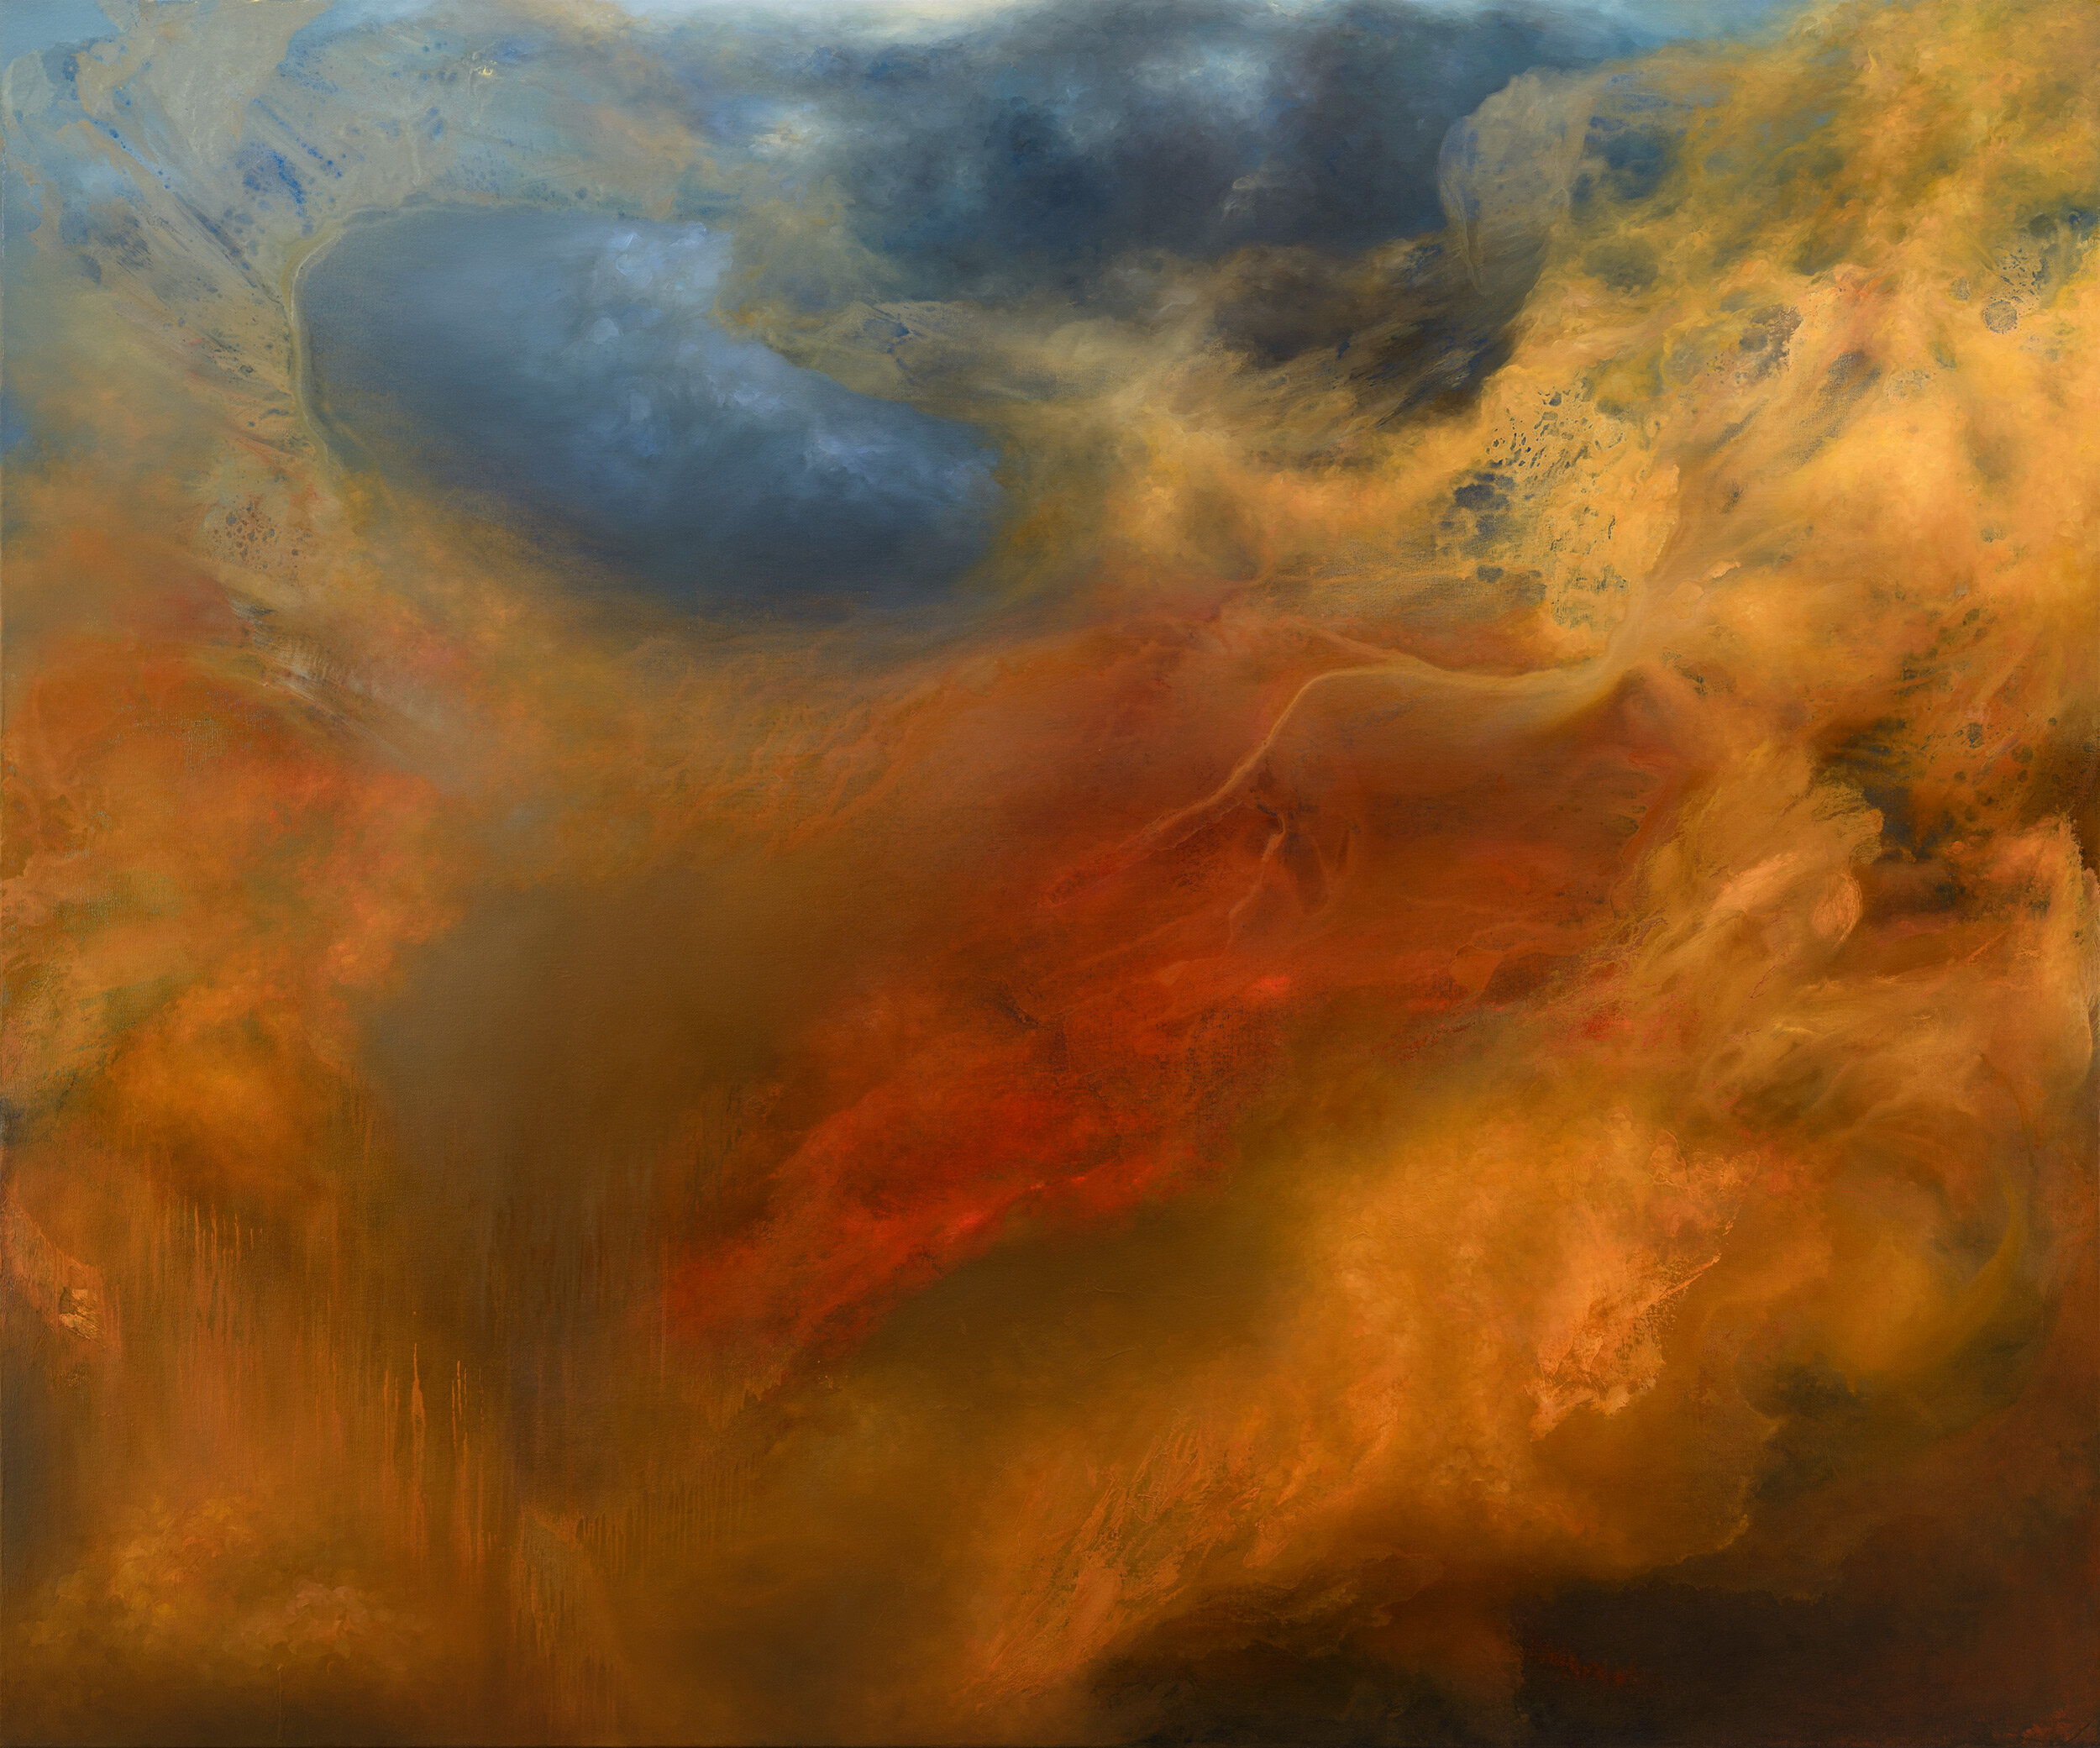 """Manifold, 60"""" x 72"""", oil on canvas, 2015, Samantha Keely Smith.  (also available as a Limited Edition Print  here )"""